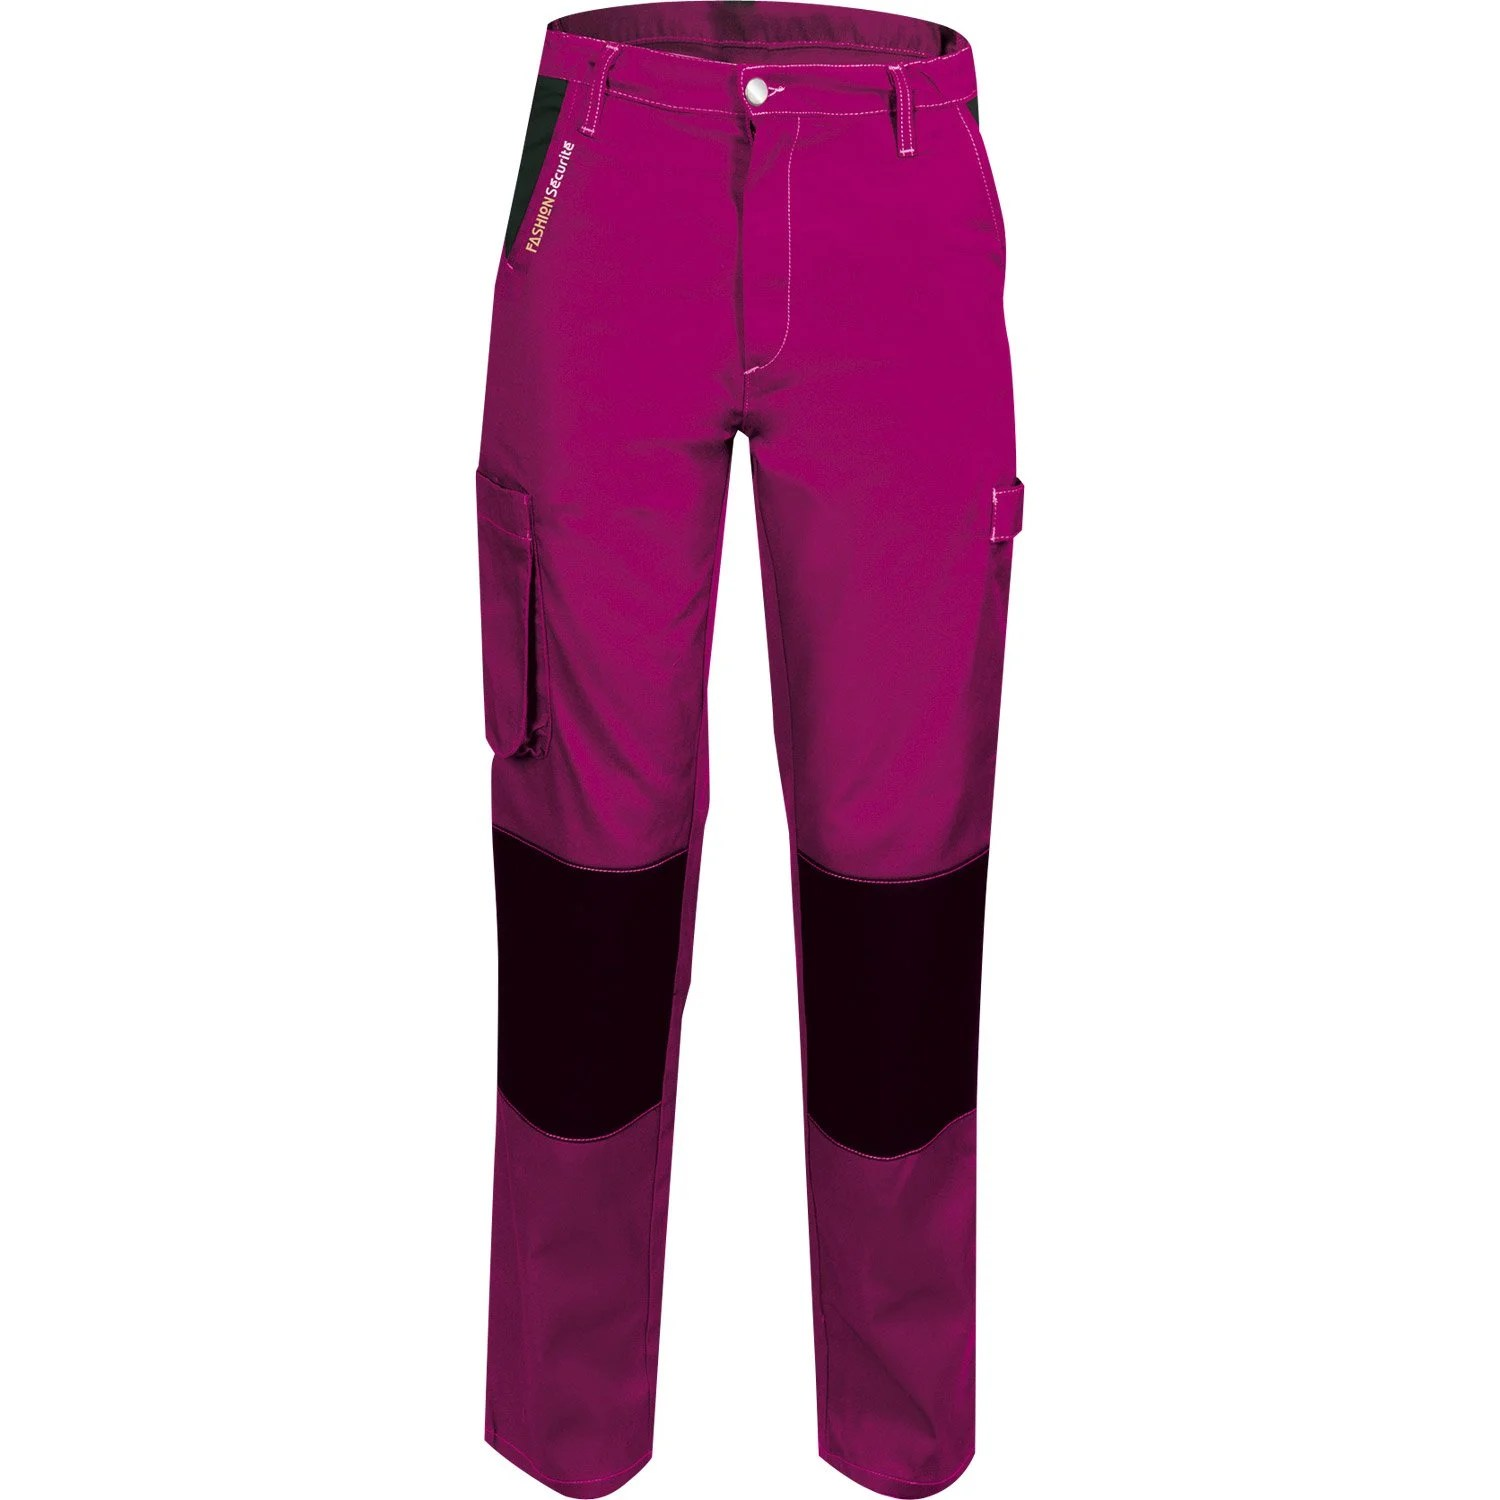 Pantalon Travail Leroy Merlin Pantalon De Travail Fashion Securite Pep's, Rose / Noir